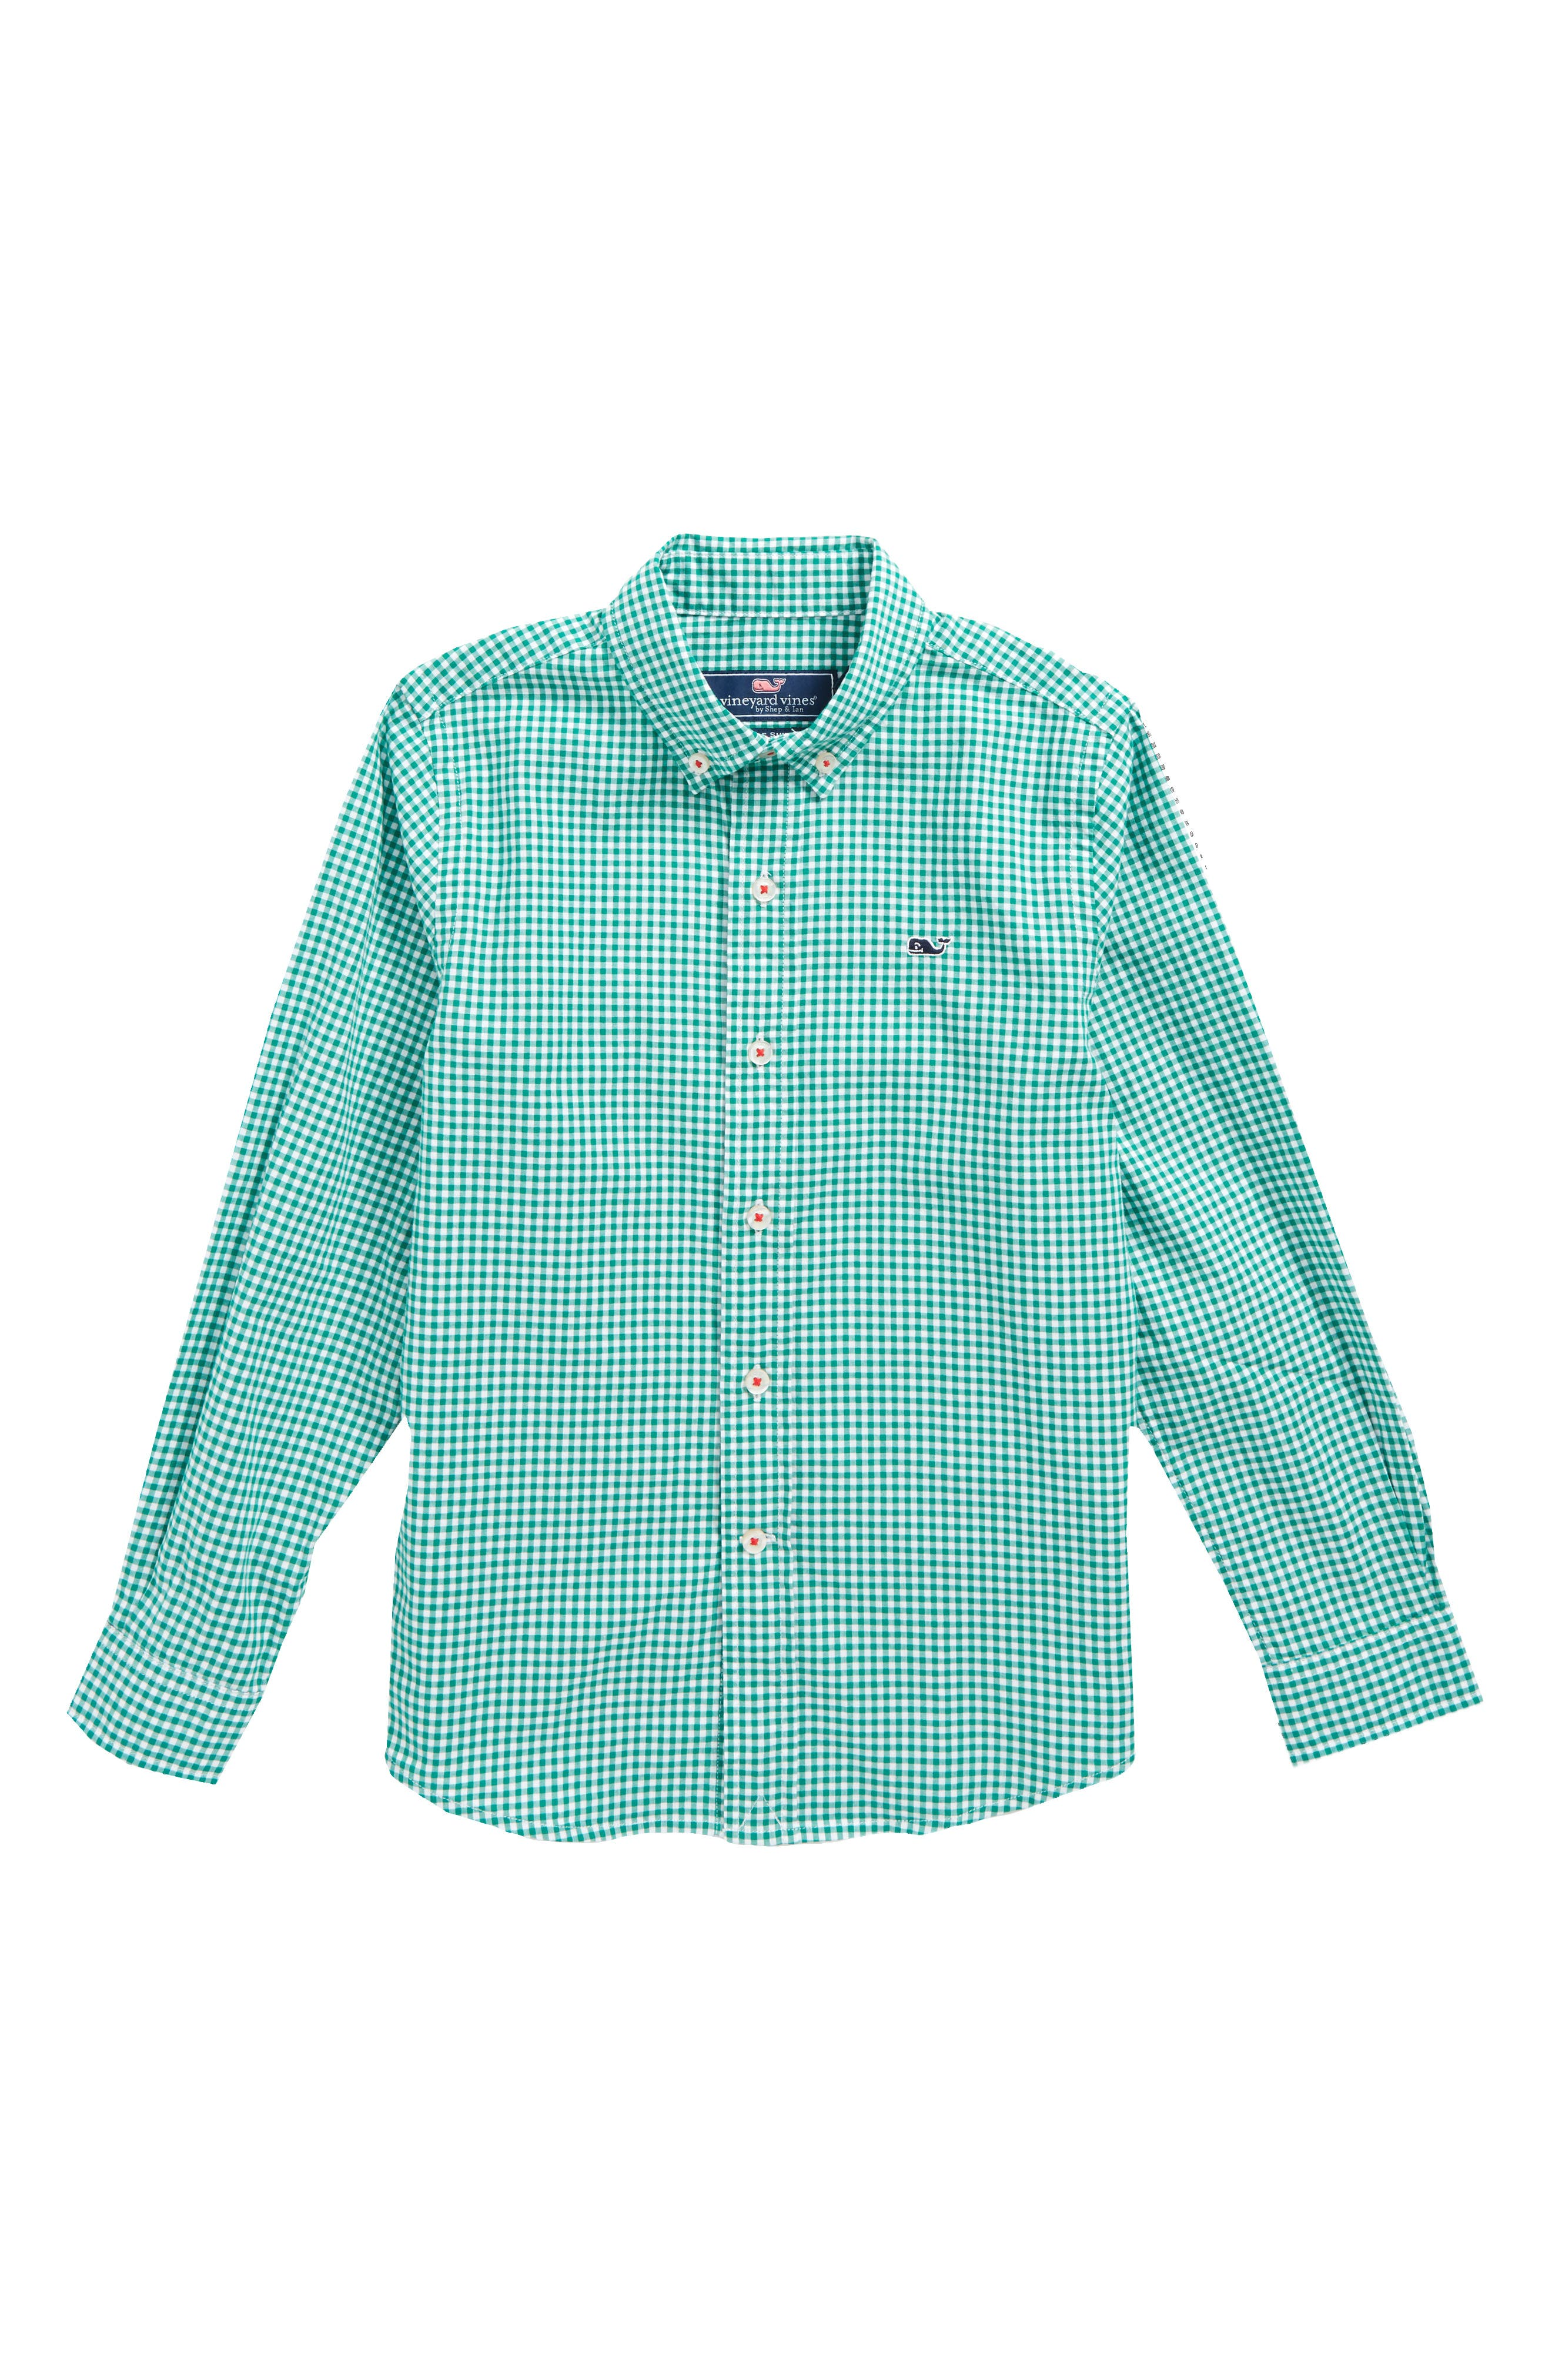 Old Town Gingham Whale Shirt,                             Main thumbnail 1, color,                             350